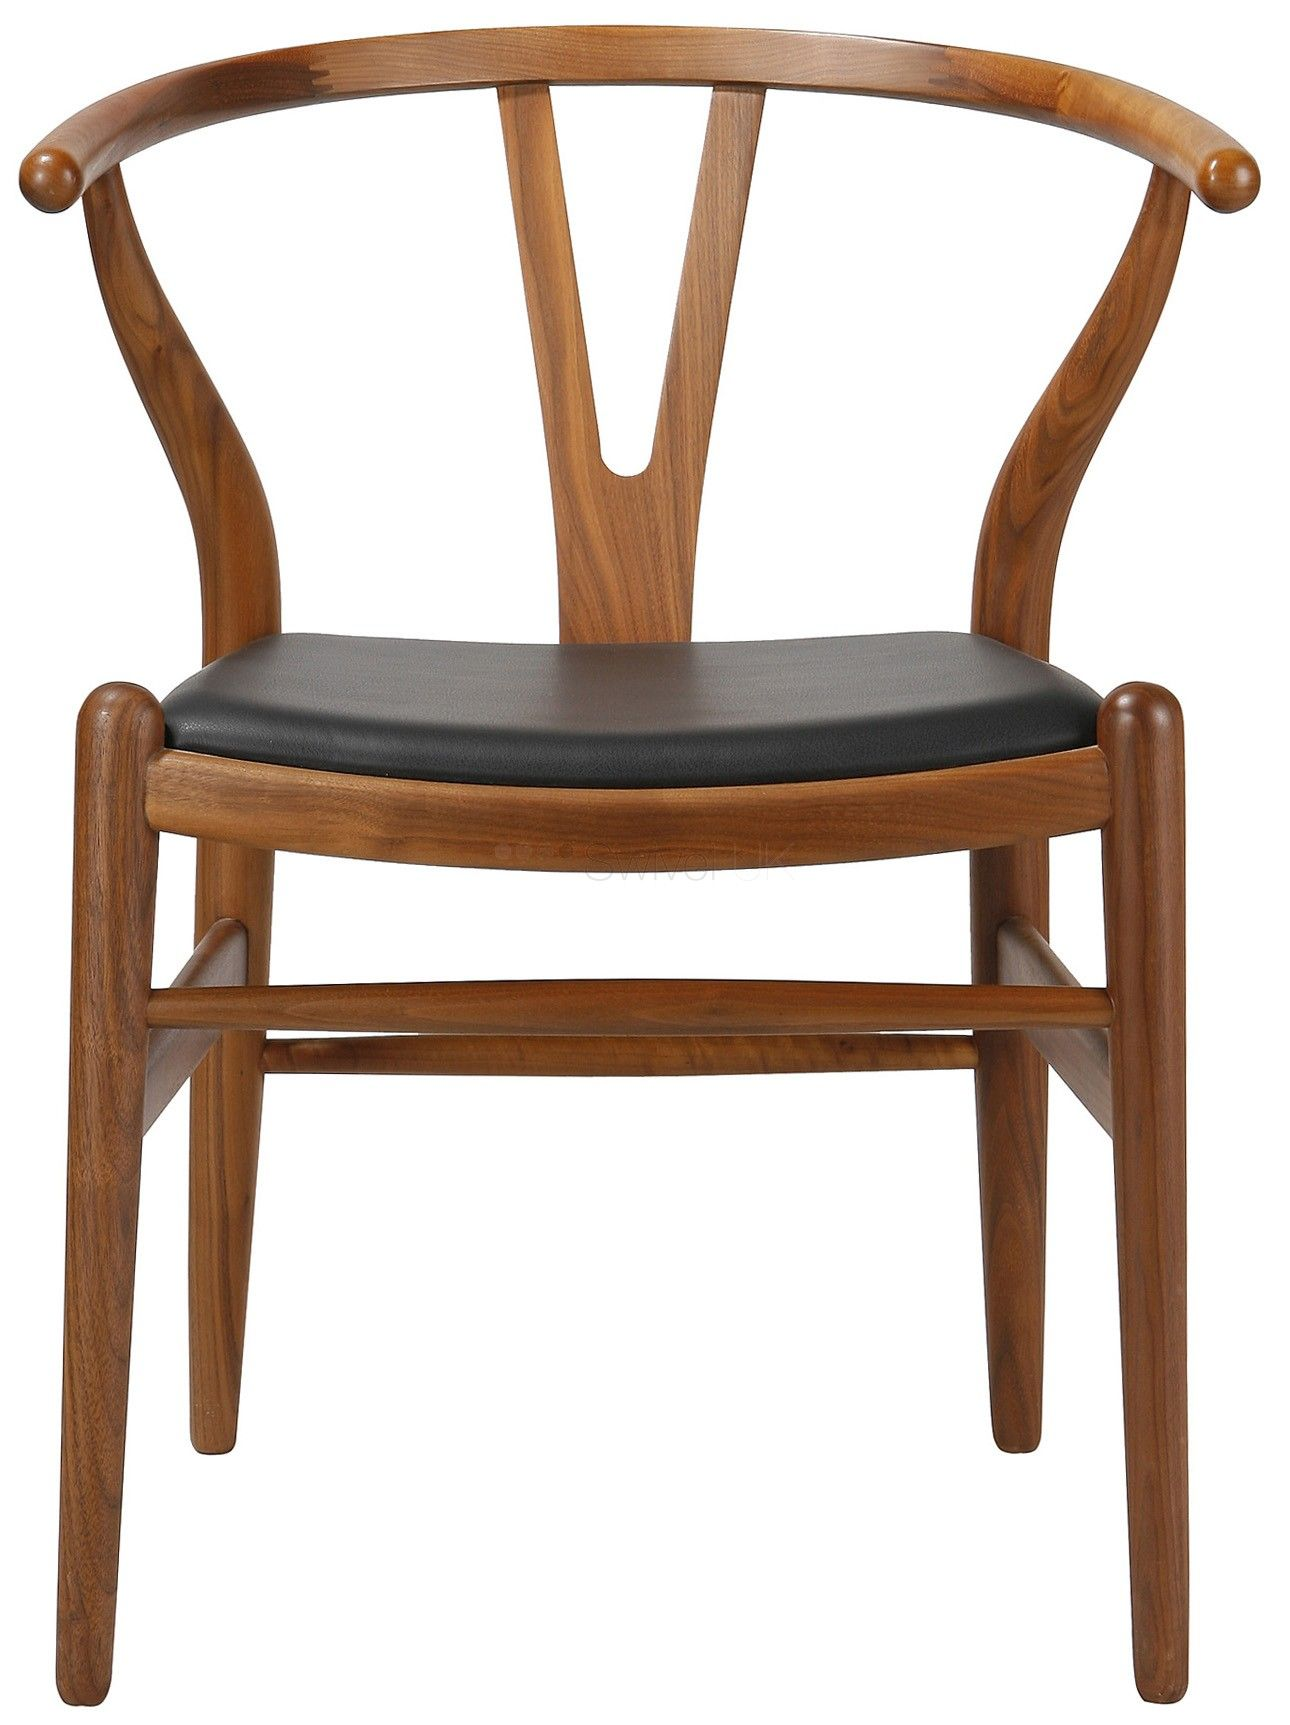 hans j wegner style ch24 wishbone y dining chair leather pad style